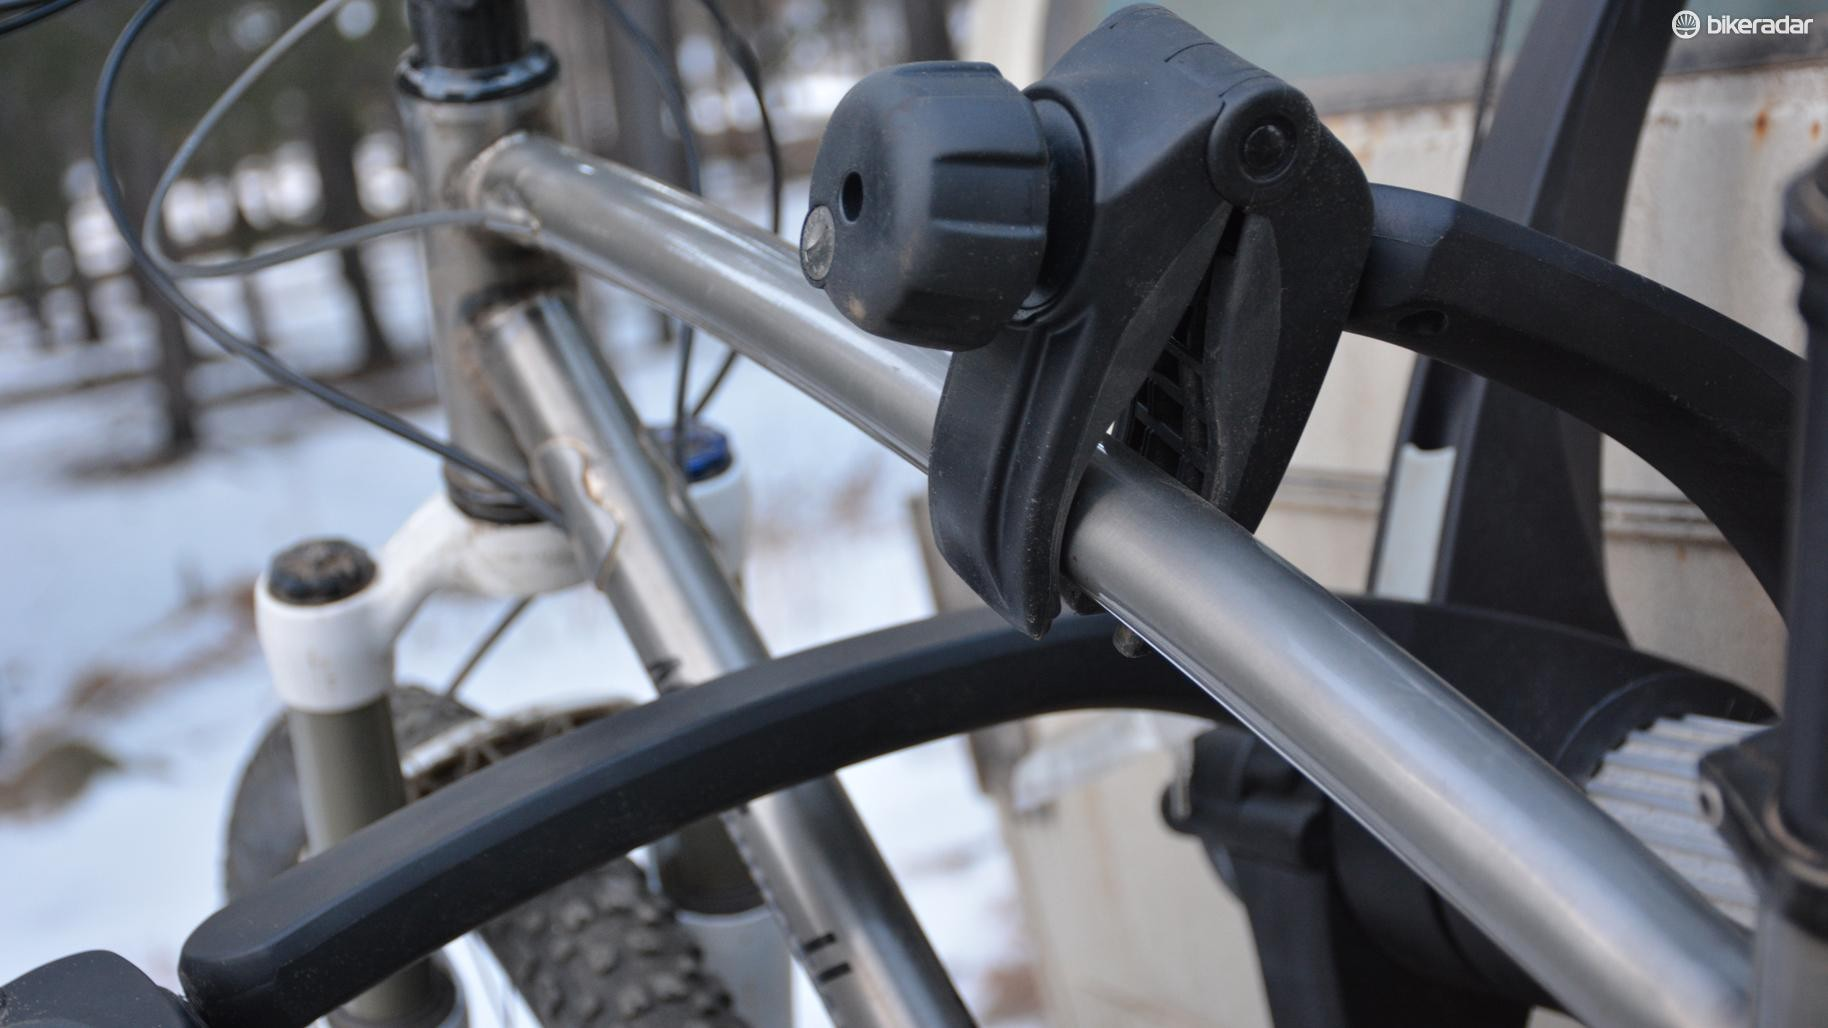 The rubberized clamps hold very tight on a variety of tube shapes